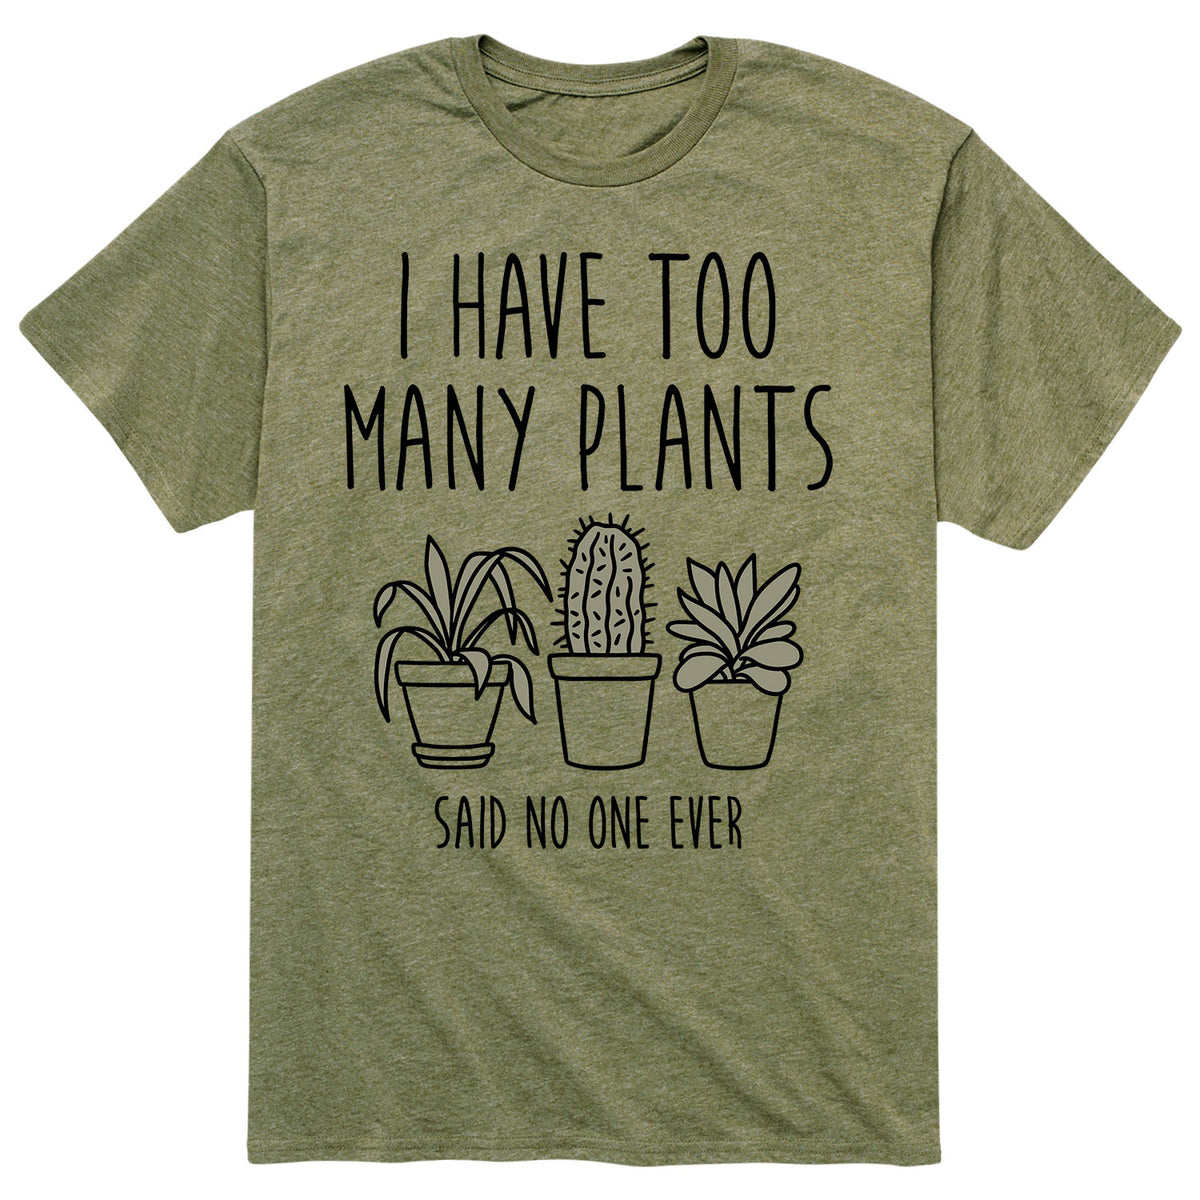 I Have Too Many Plants - Men's Short Sleeve T-Shirt